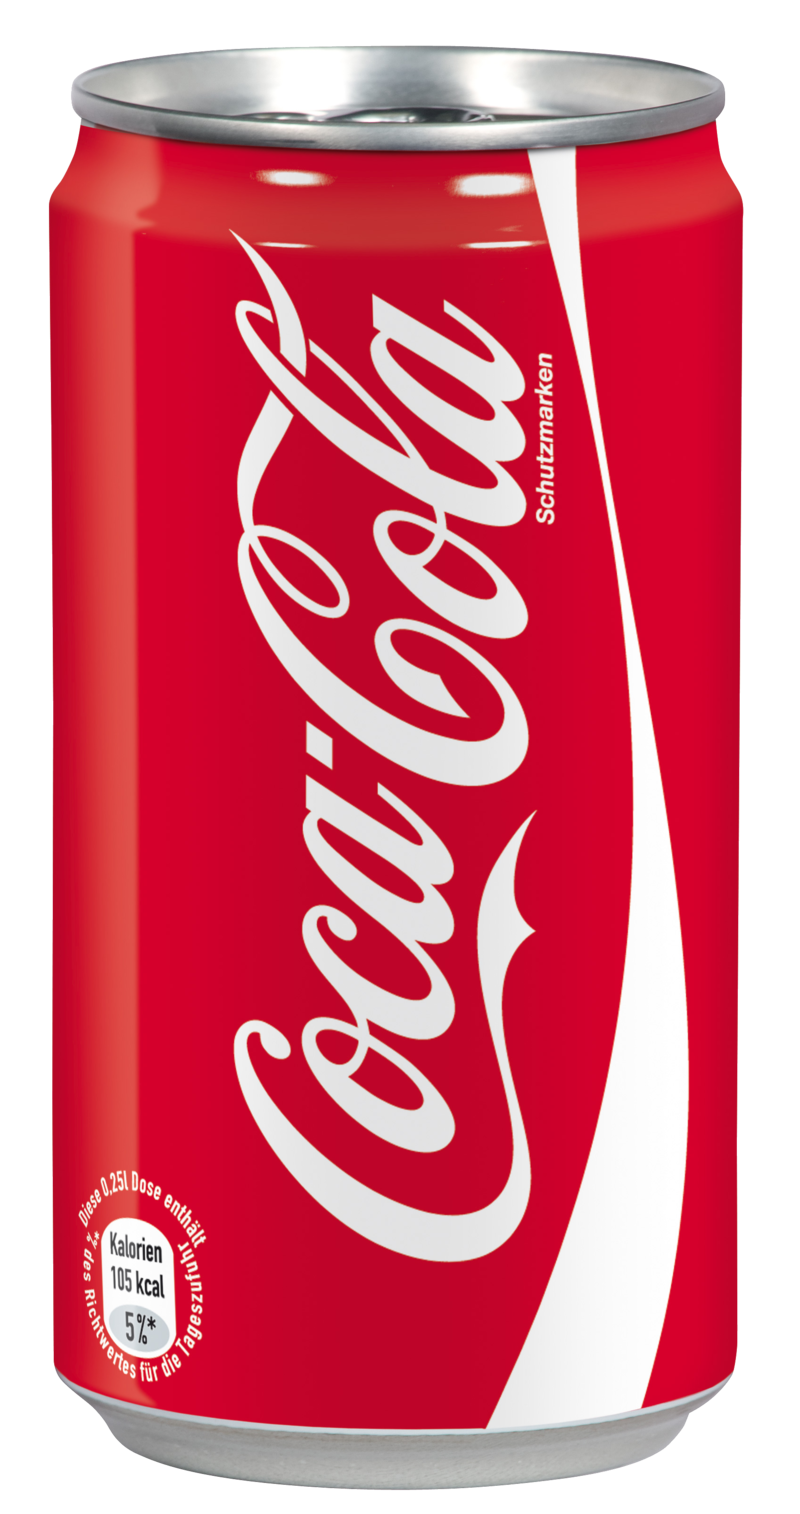 Download Free png pin Soda clipart transparent - DLPNG.com png free library